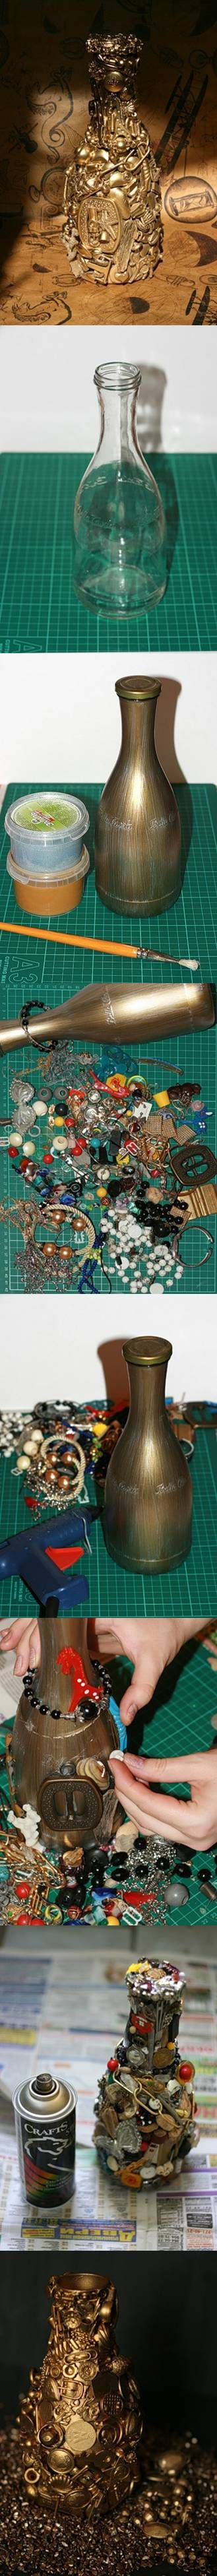 DIY Unwanted Things Decorated Bottle